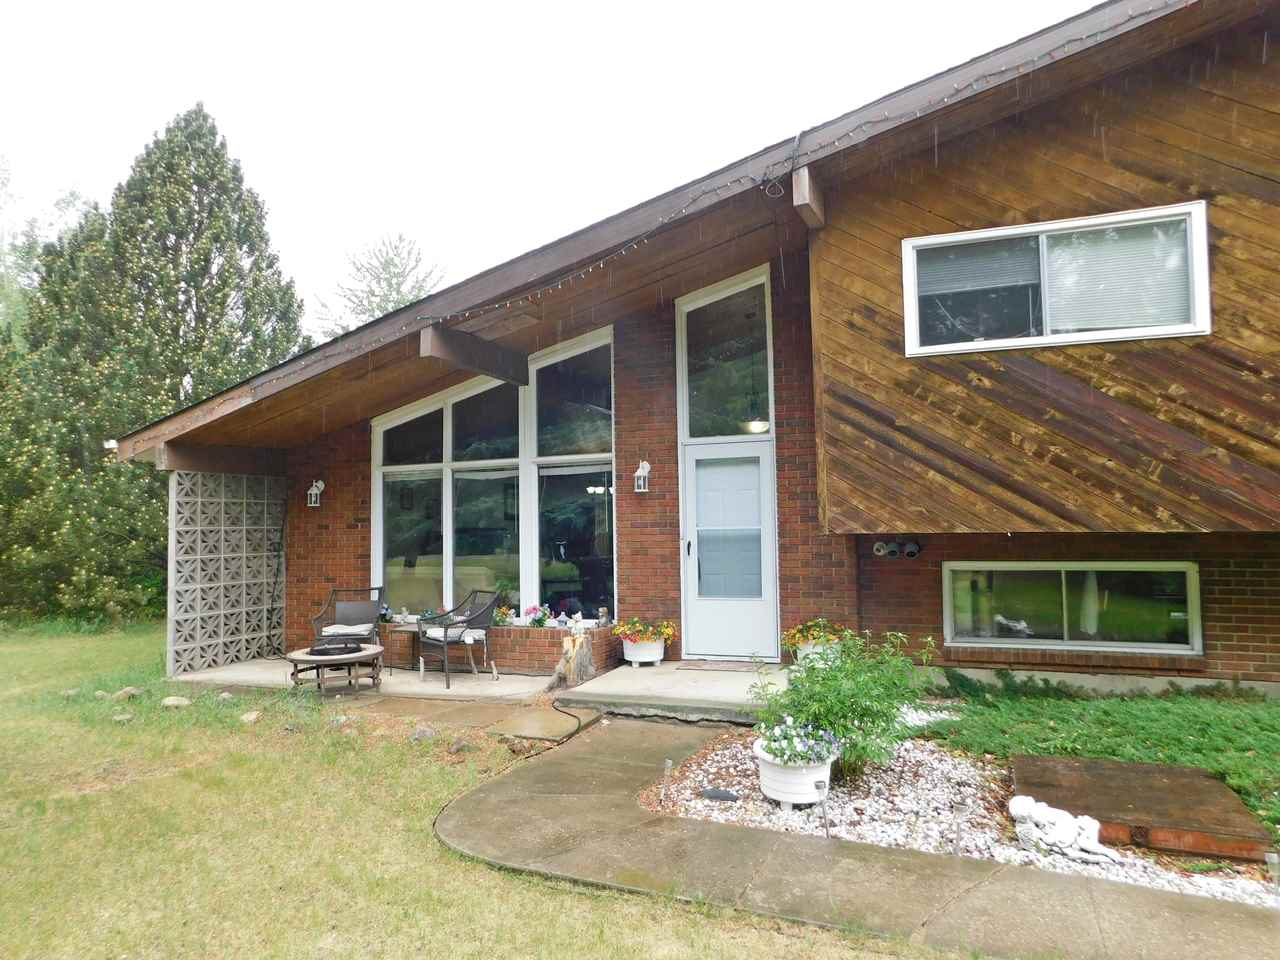 Main Photo: 55, 55326 Rg Rd 223: Rural Sturgeon County House for sale : MLS®# E4098537